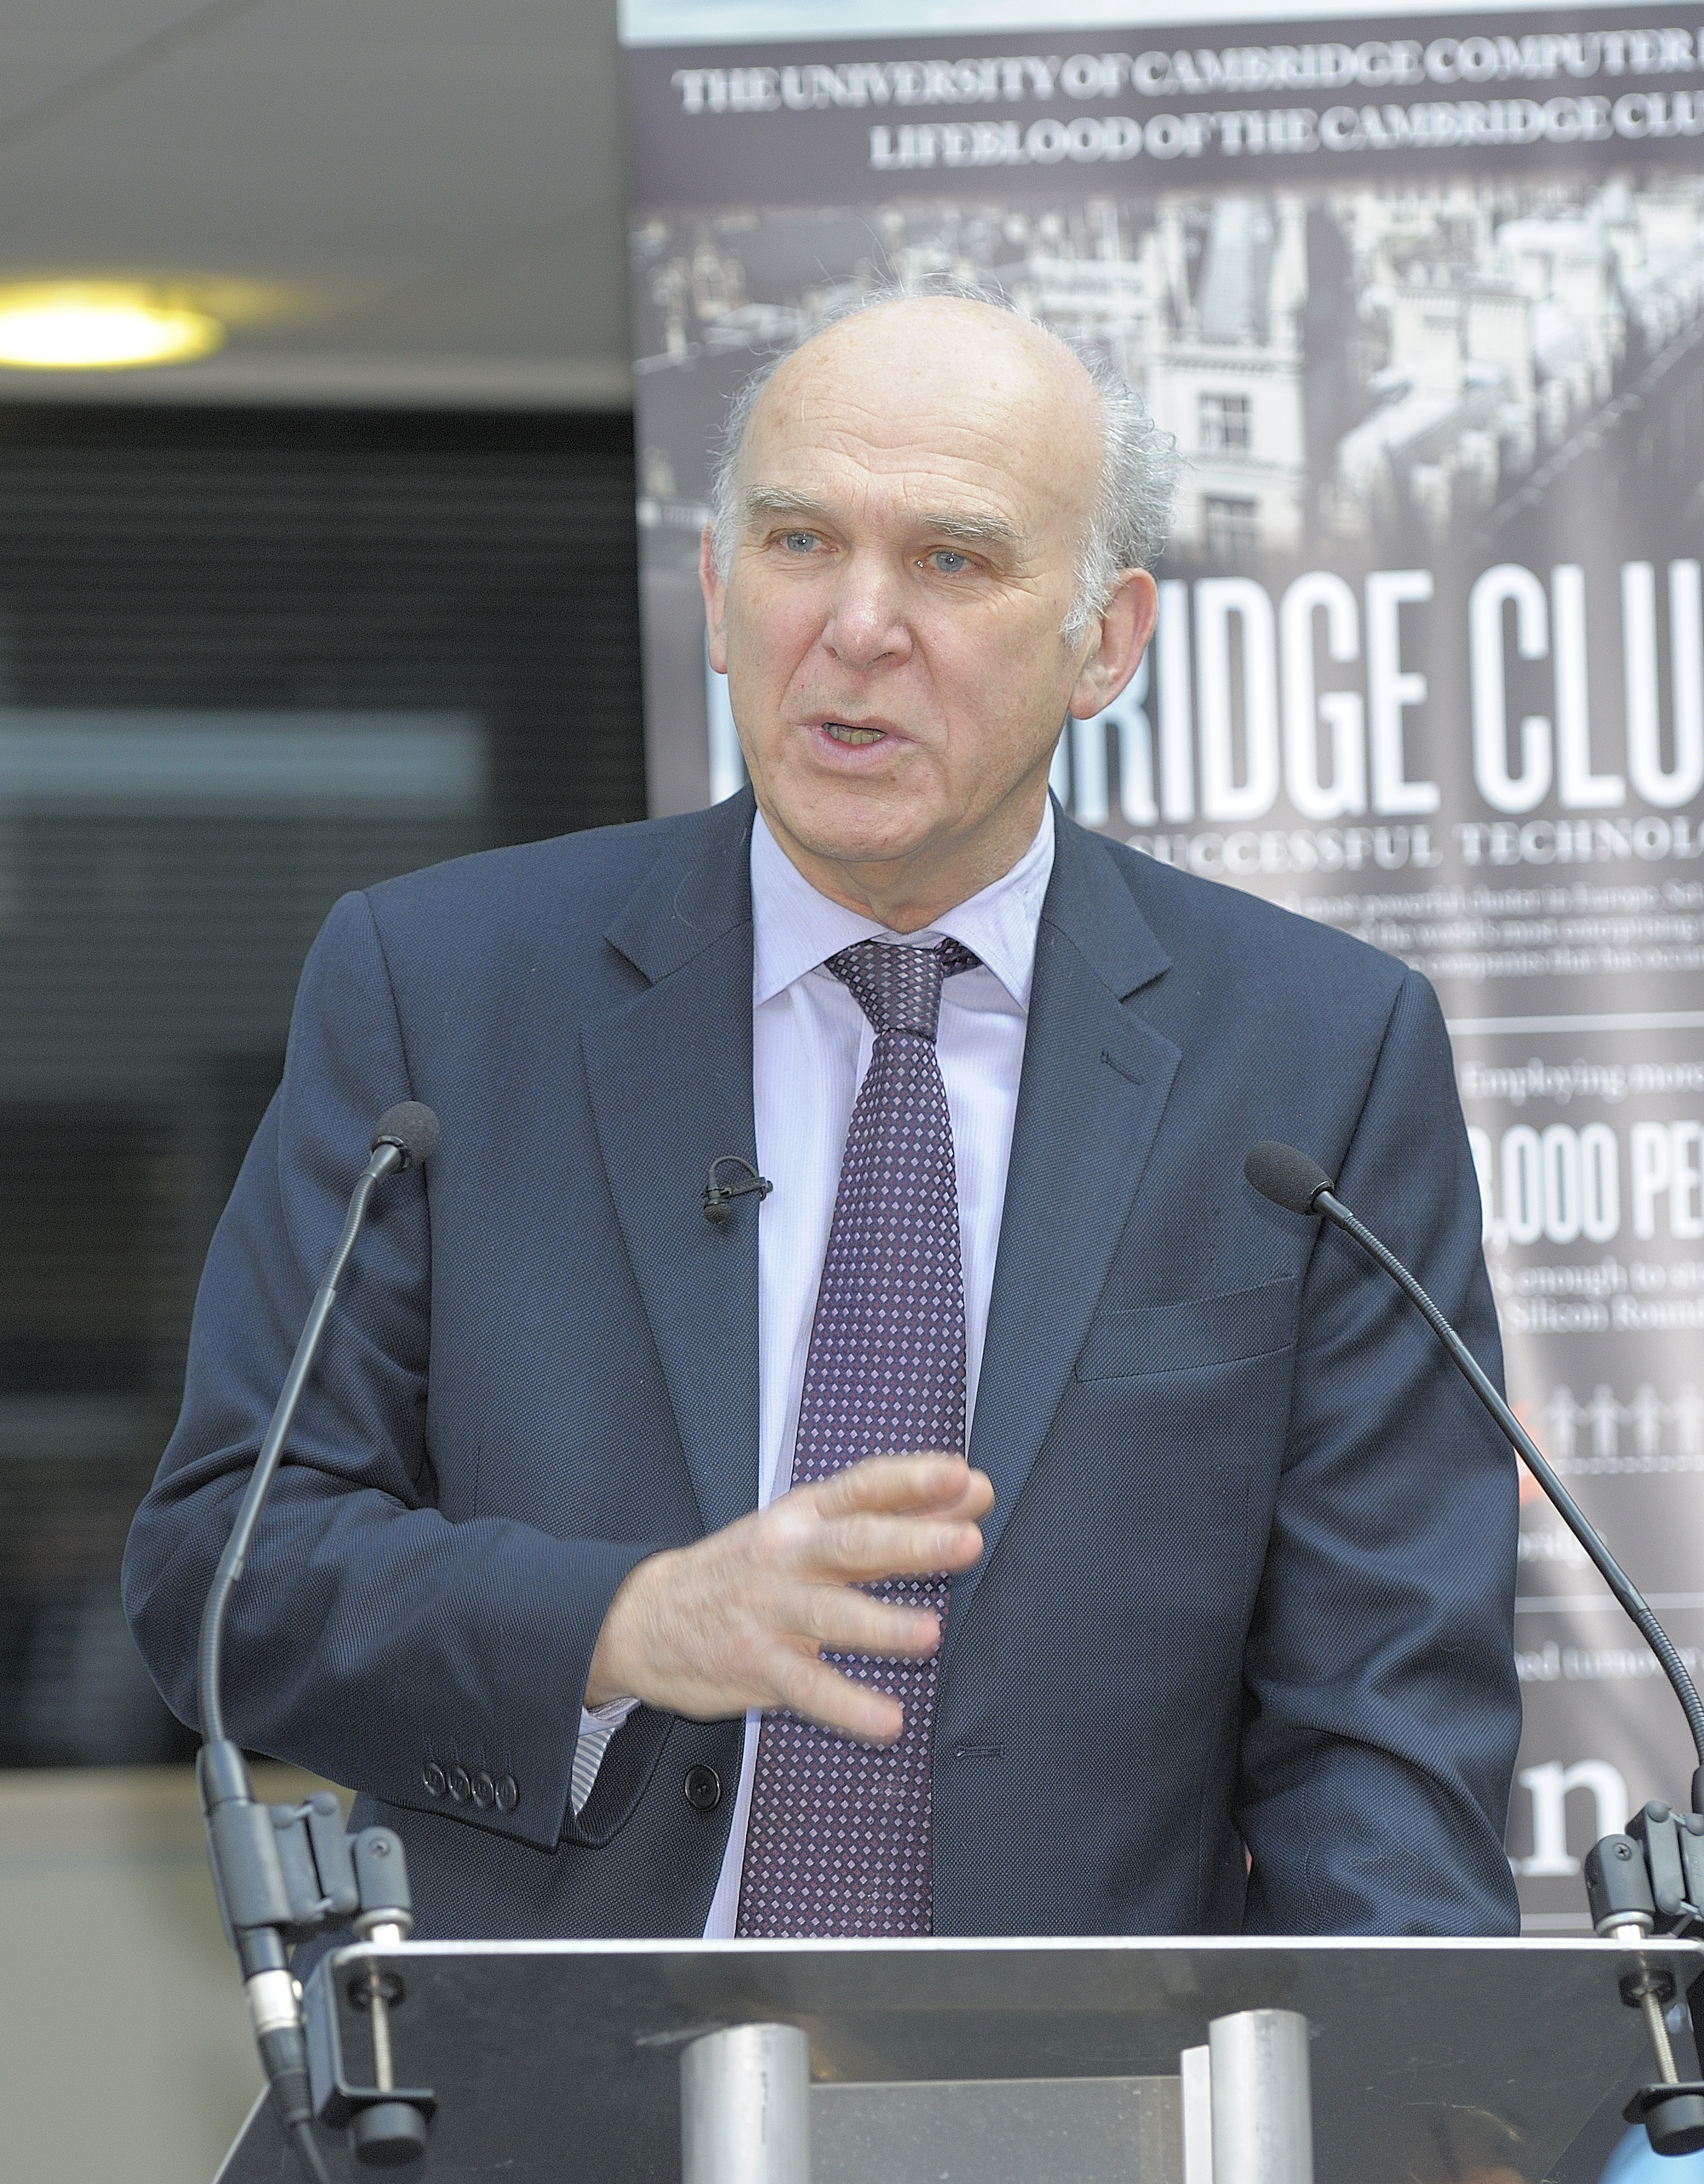 Rt Hon Dr Vince Cable MP